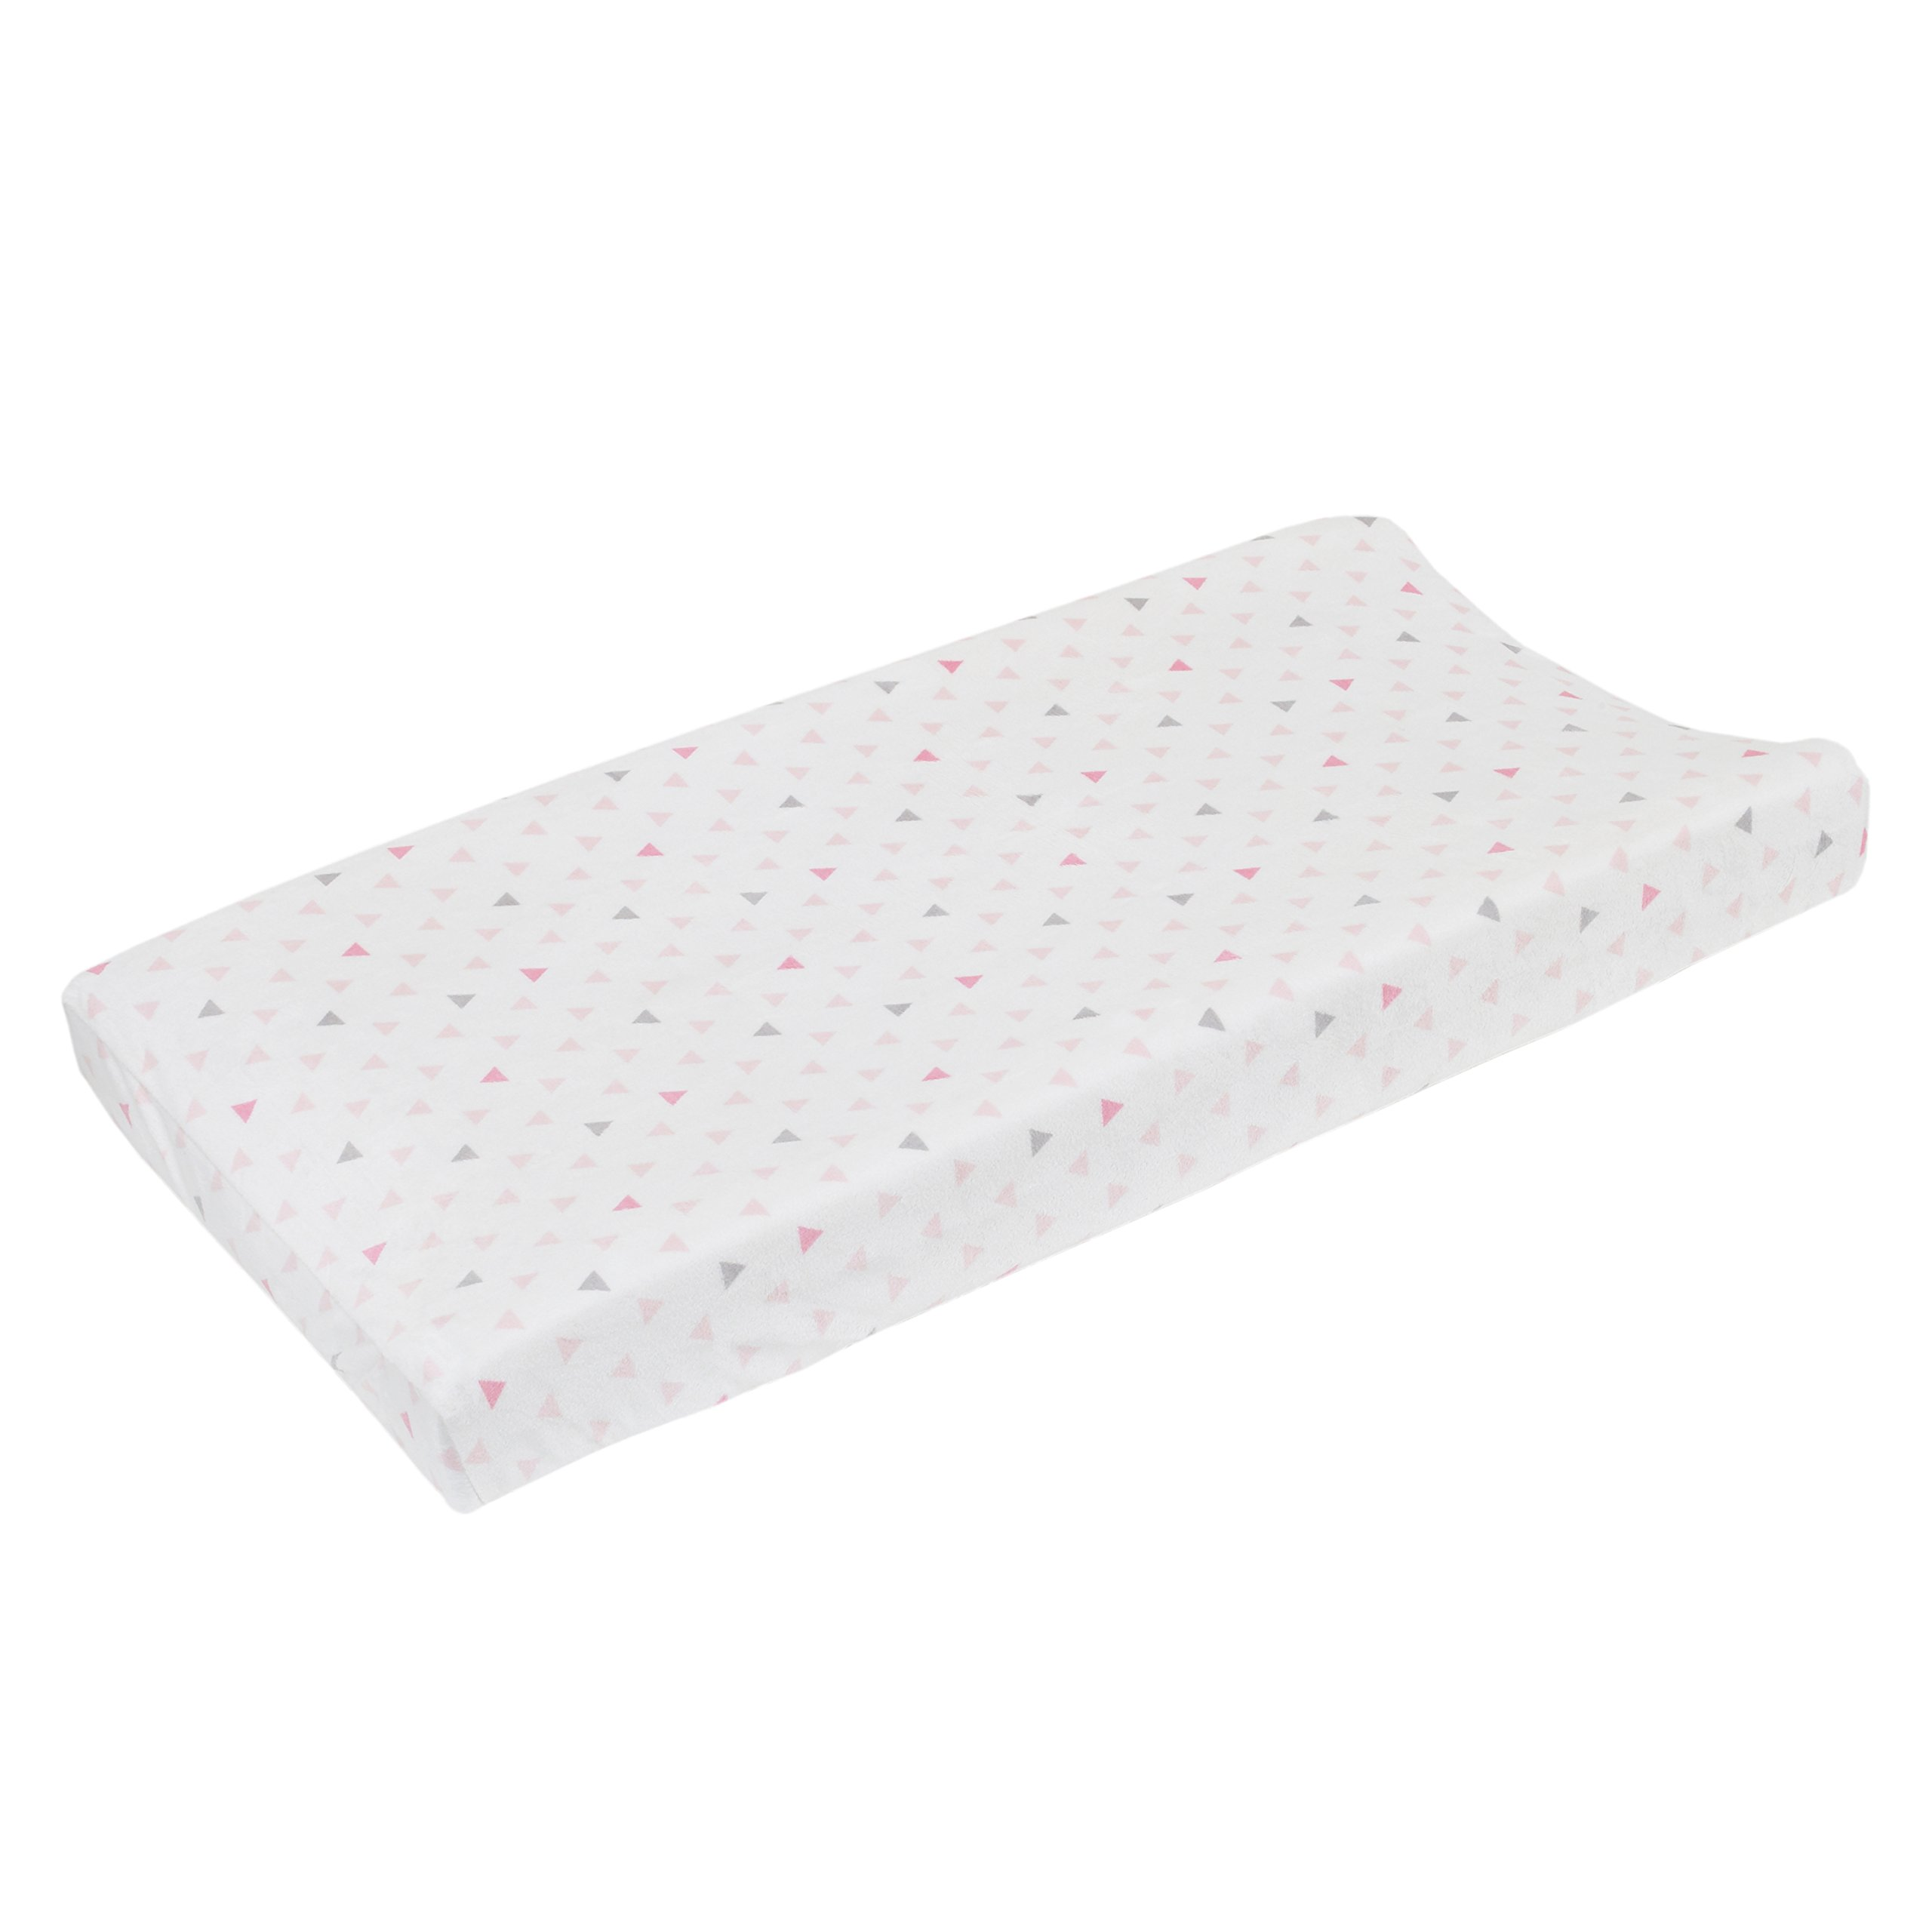 NoJo Aztec Mix & Match Super Soft Changing Pad Cover, Pink, Grey, White, Triangles Velboa by NoJo